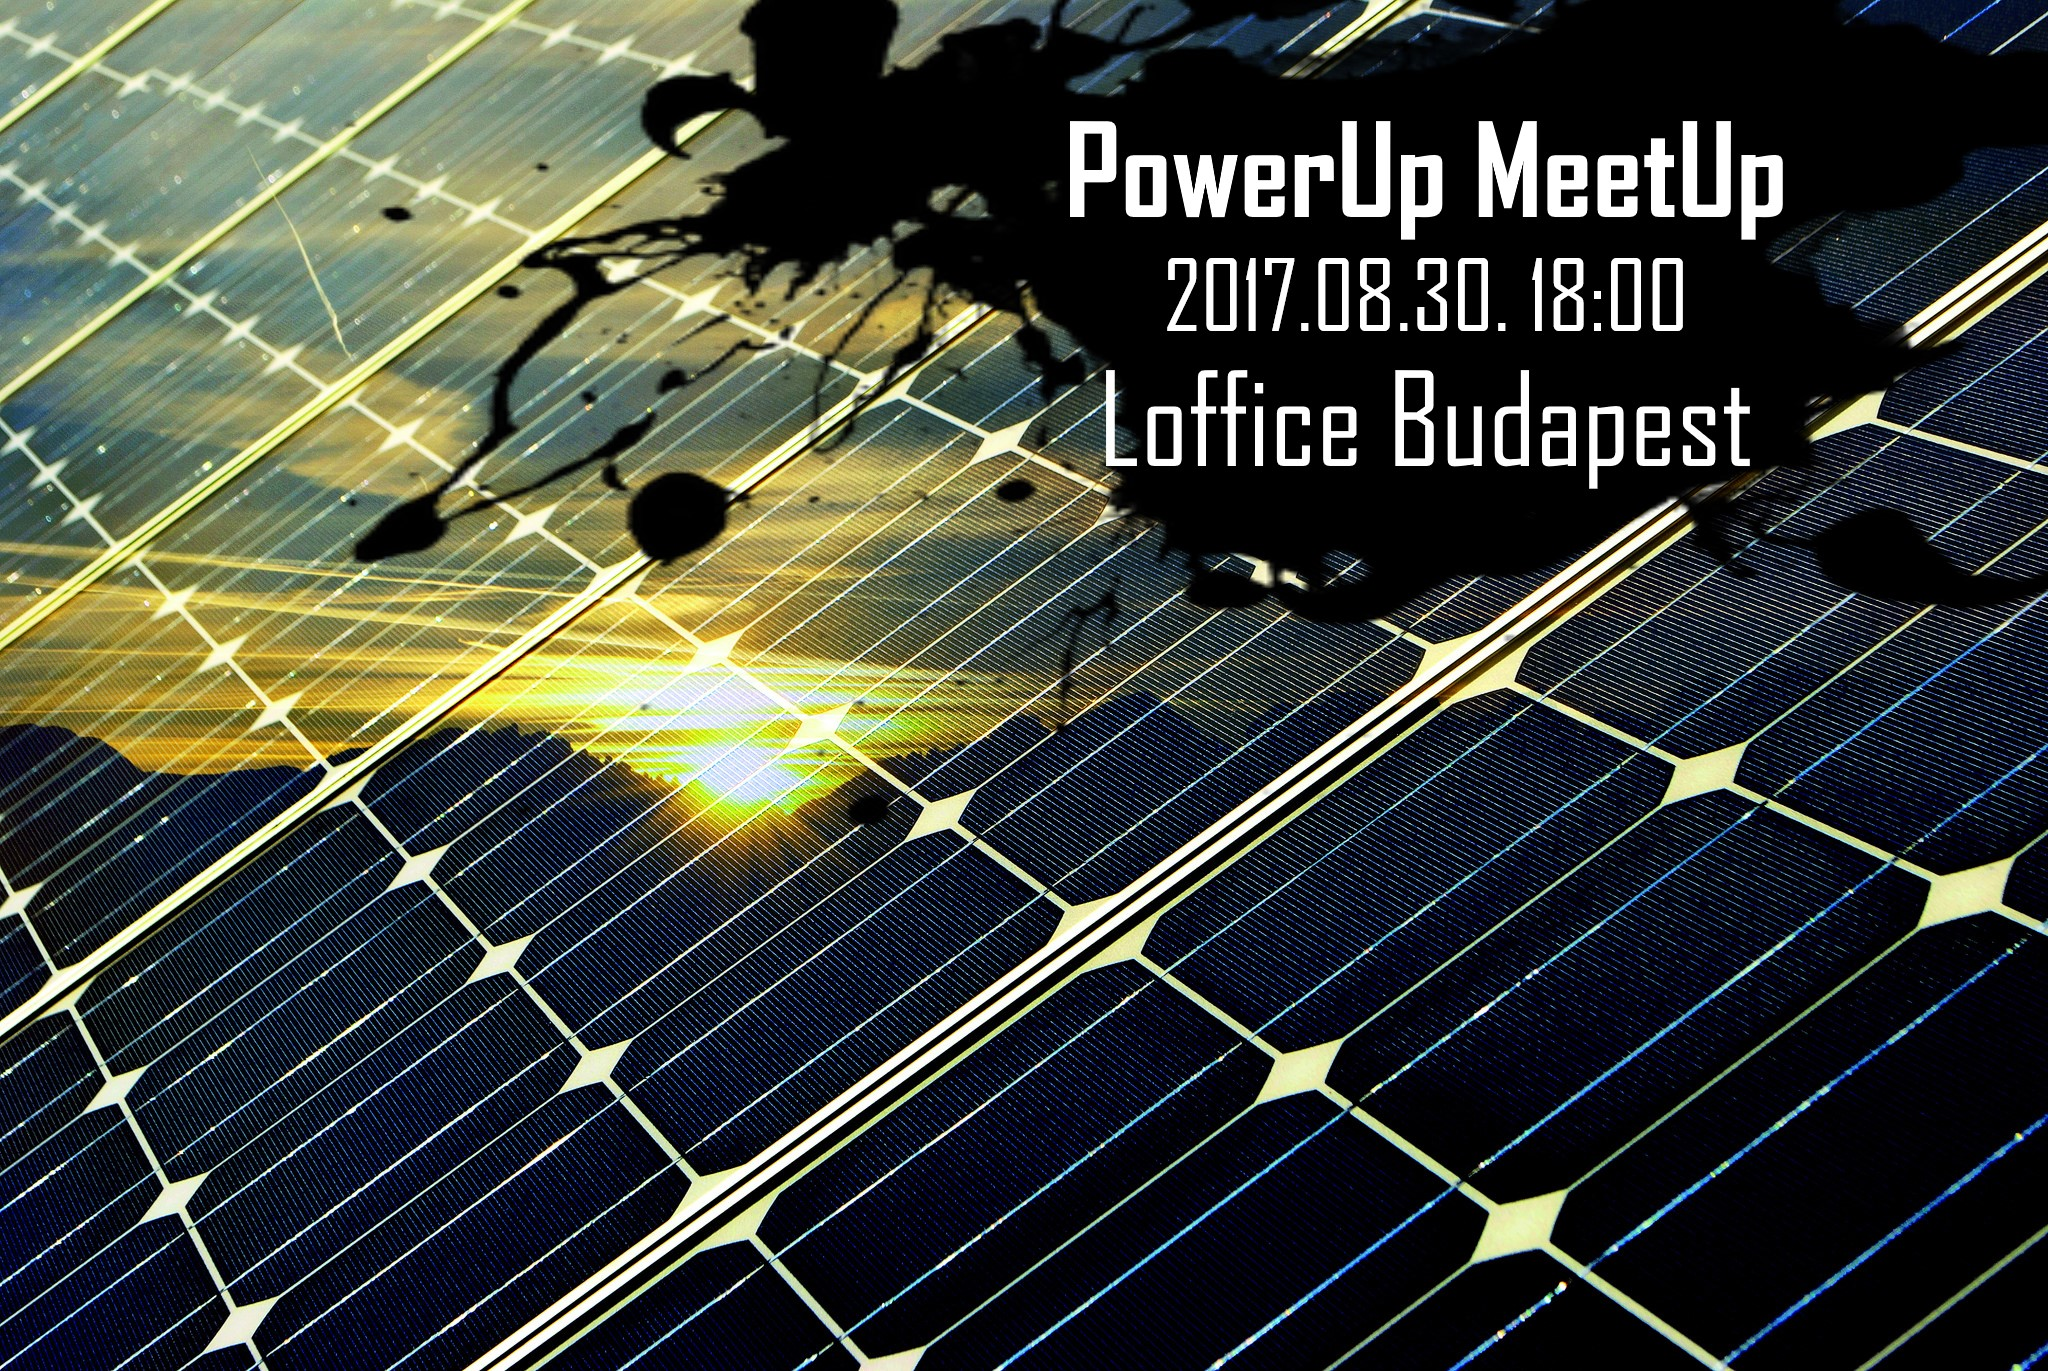 PowerUp MeetUp by InnoEnergy & Loffice